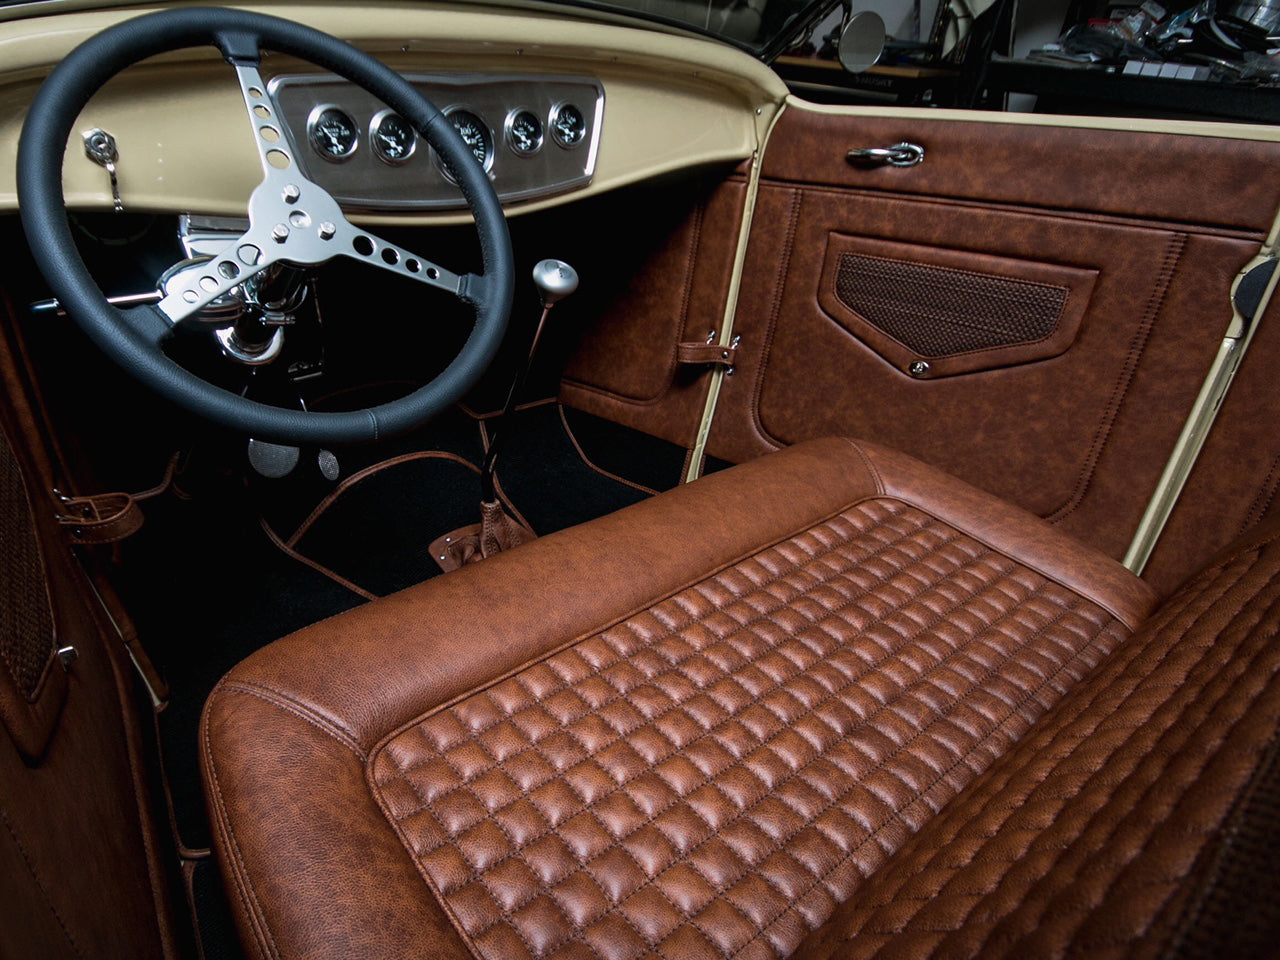 Relicate Distressed Rich Clay Leather 1932 Ford Roadster Pickup Leather Interior